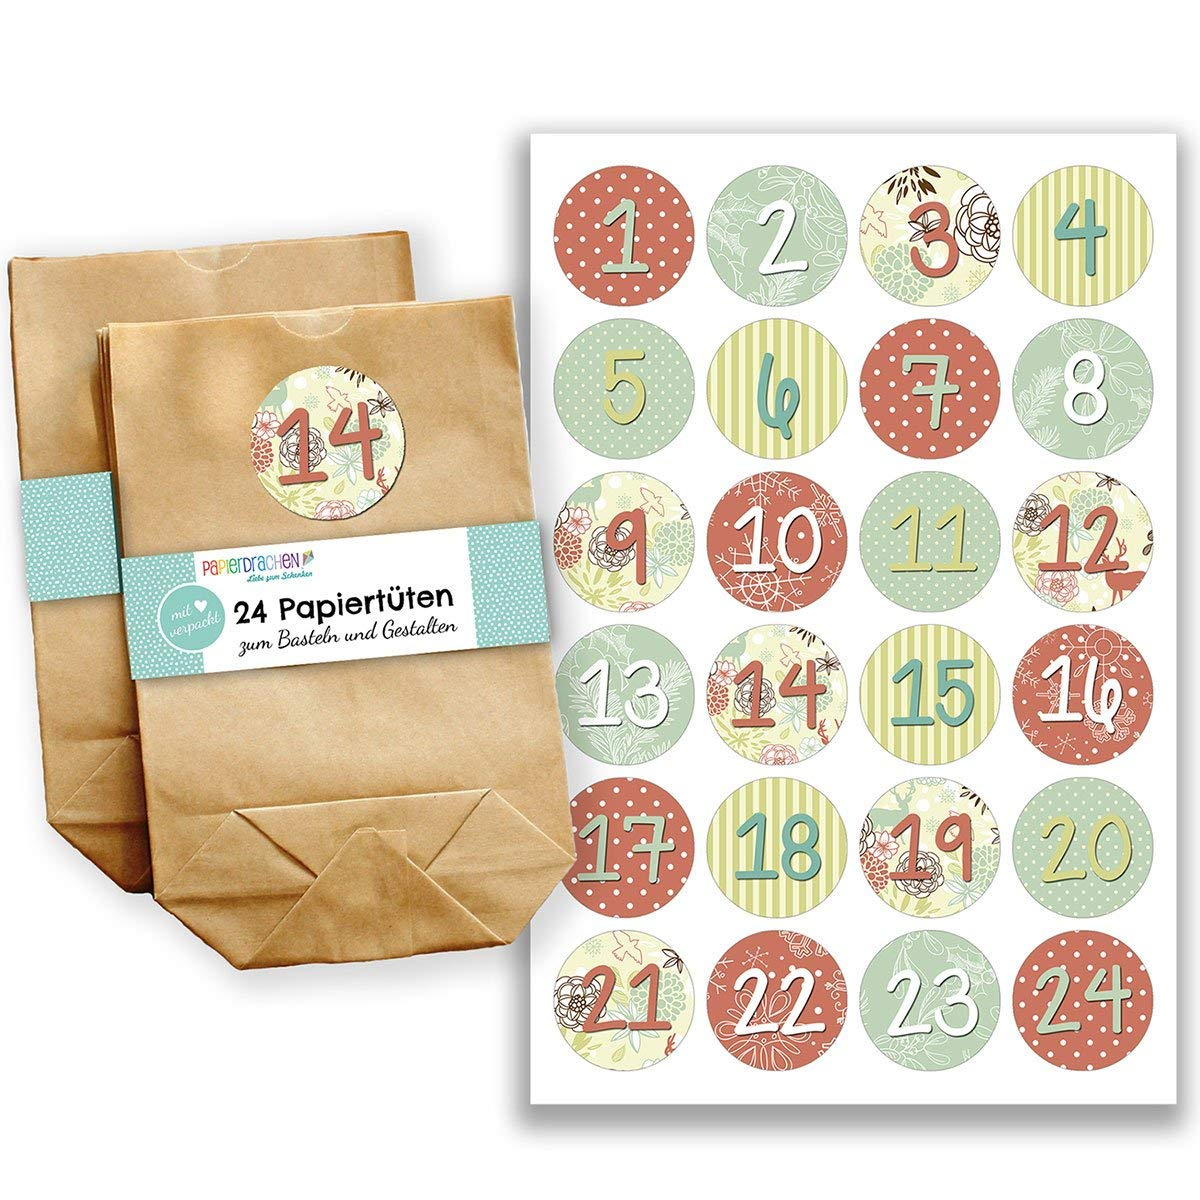 Advent calendar mini set with 24 number stickers and paper bags - DIY Set - for making and filling - stickers No 24